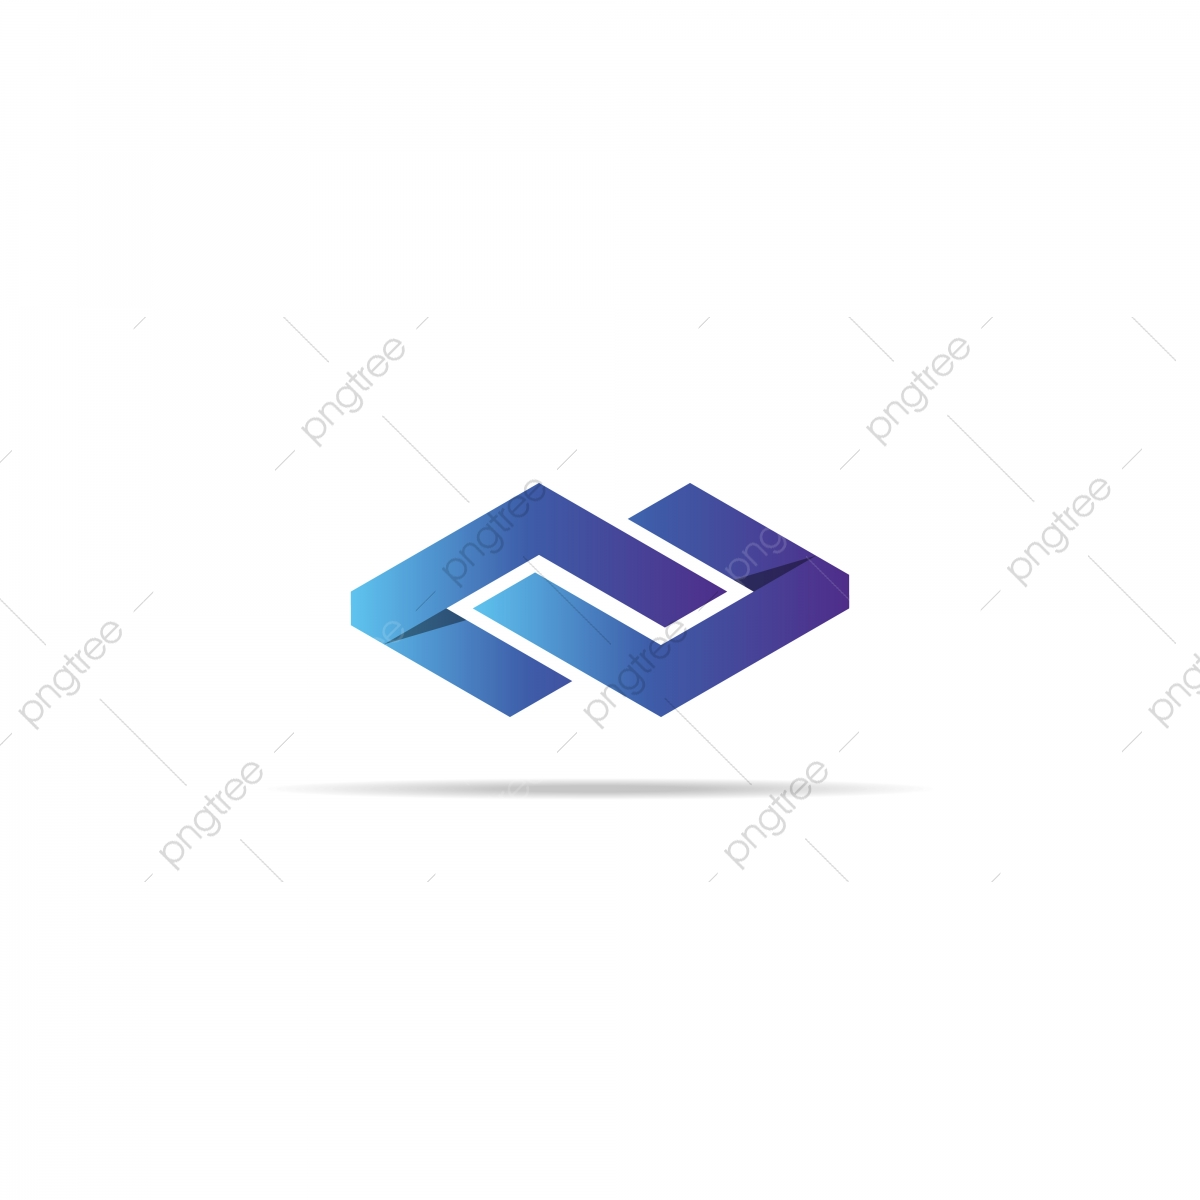 Abstract Infinity Letter Nu Chain Cube Logo Element Concept